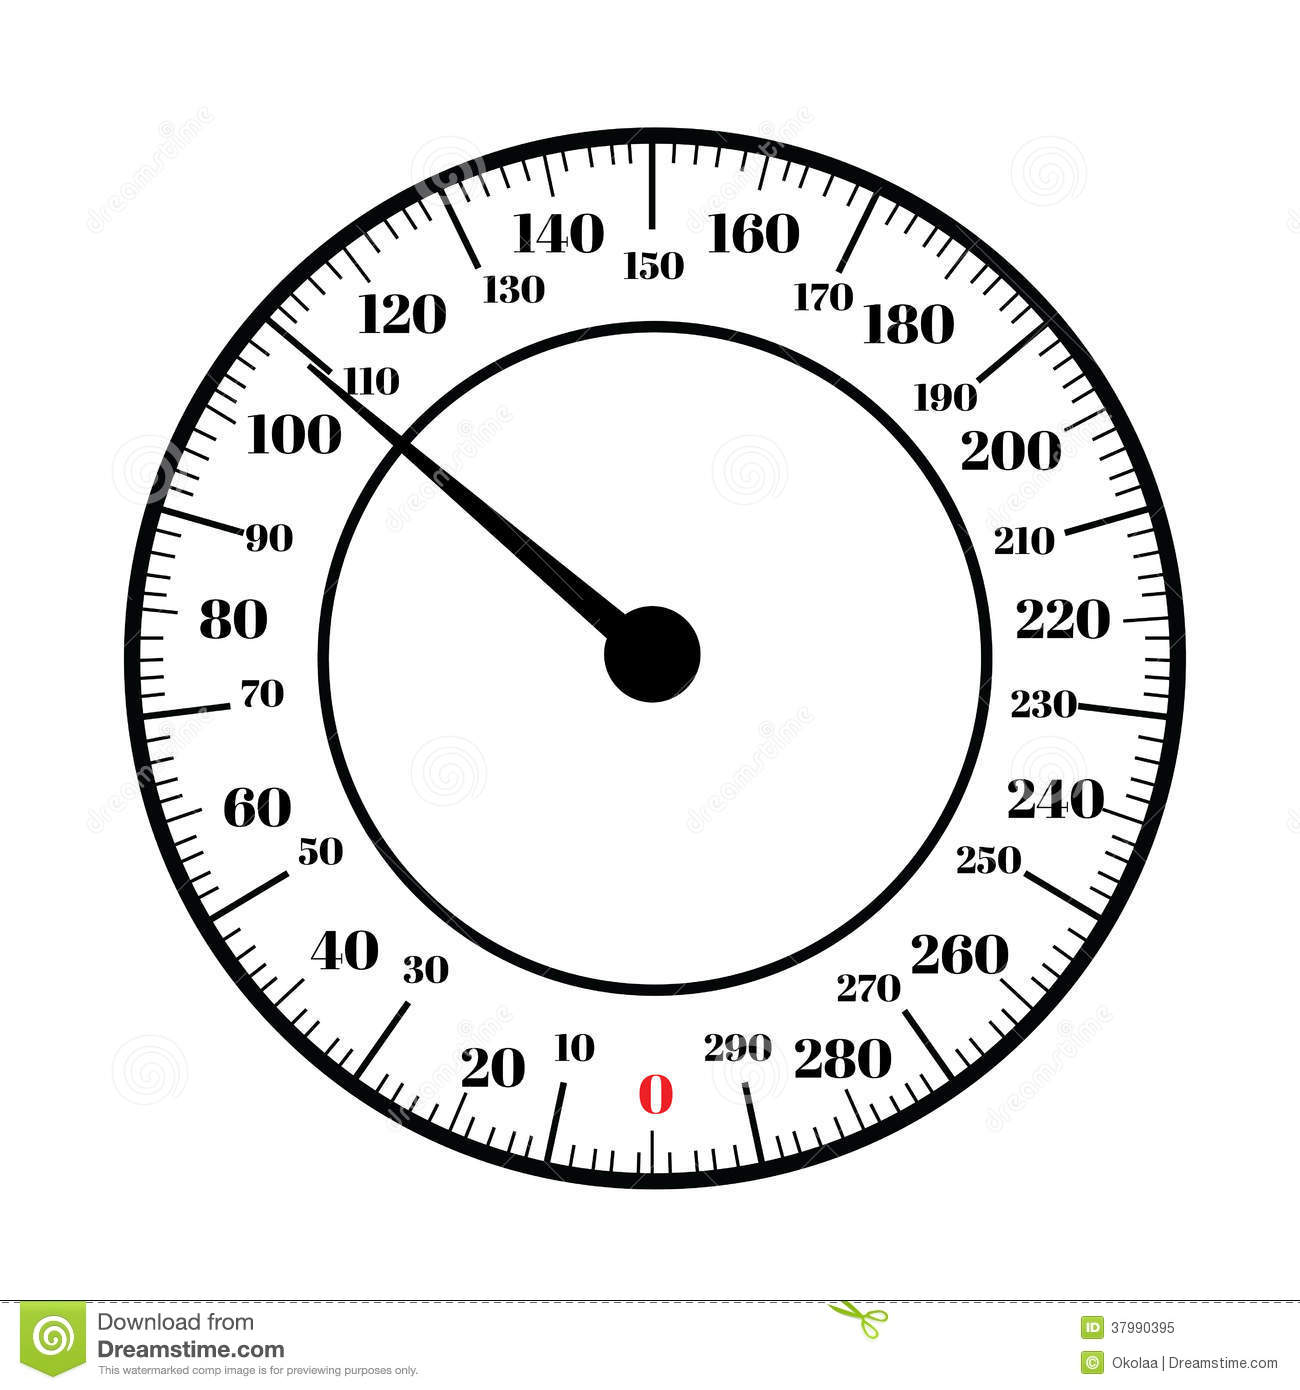 Royalty Free Stock Photo Round Analog Dial Interface Scale Format Image37990395 on teaching vector graphics